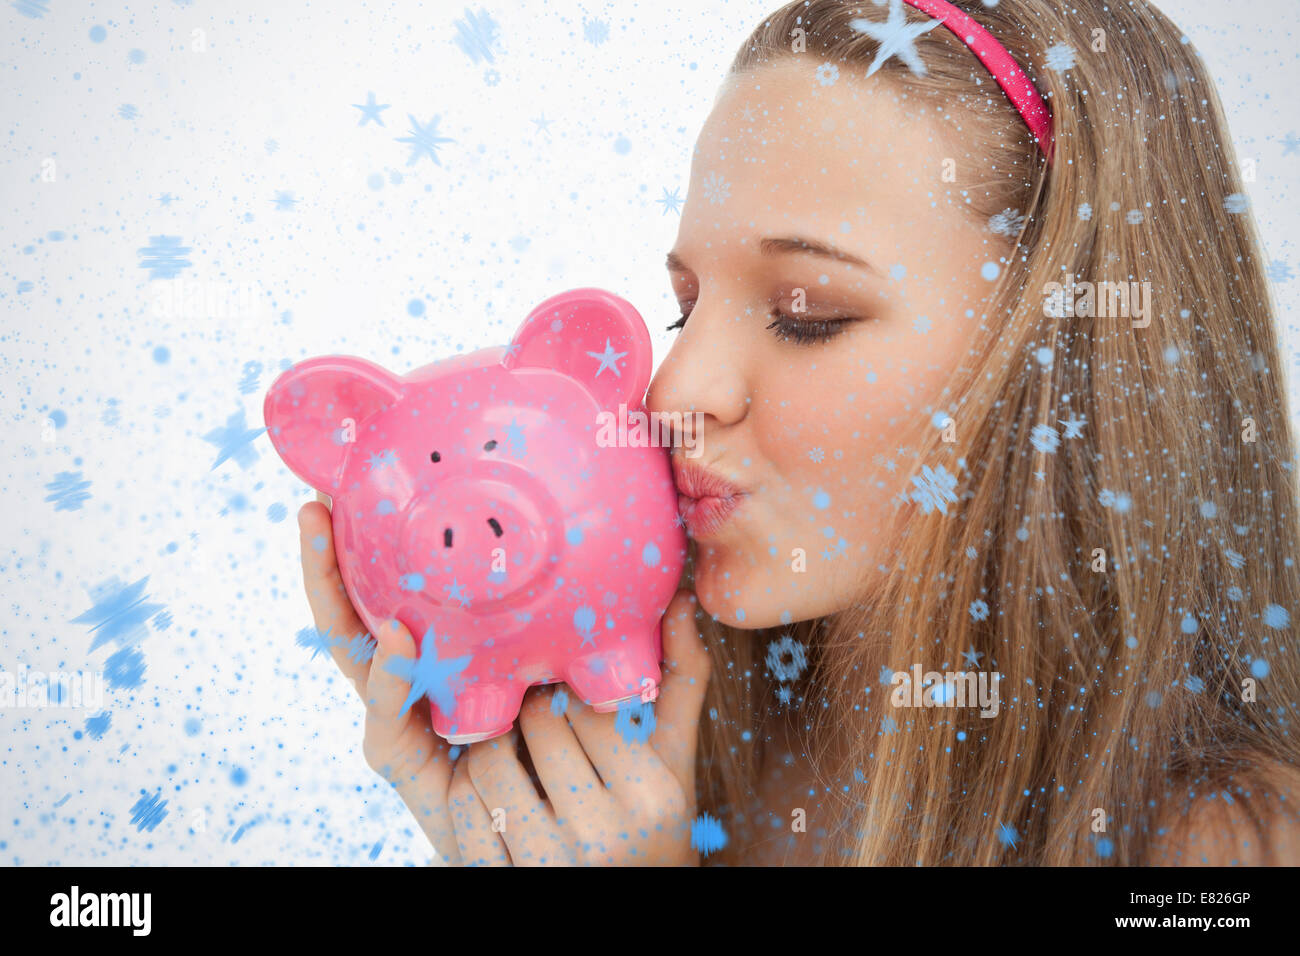 Close up of a young woman kissing a piggybank - Stock Image